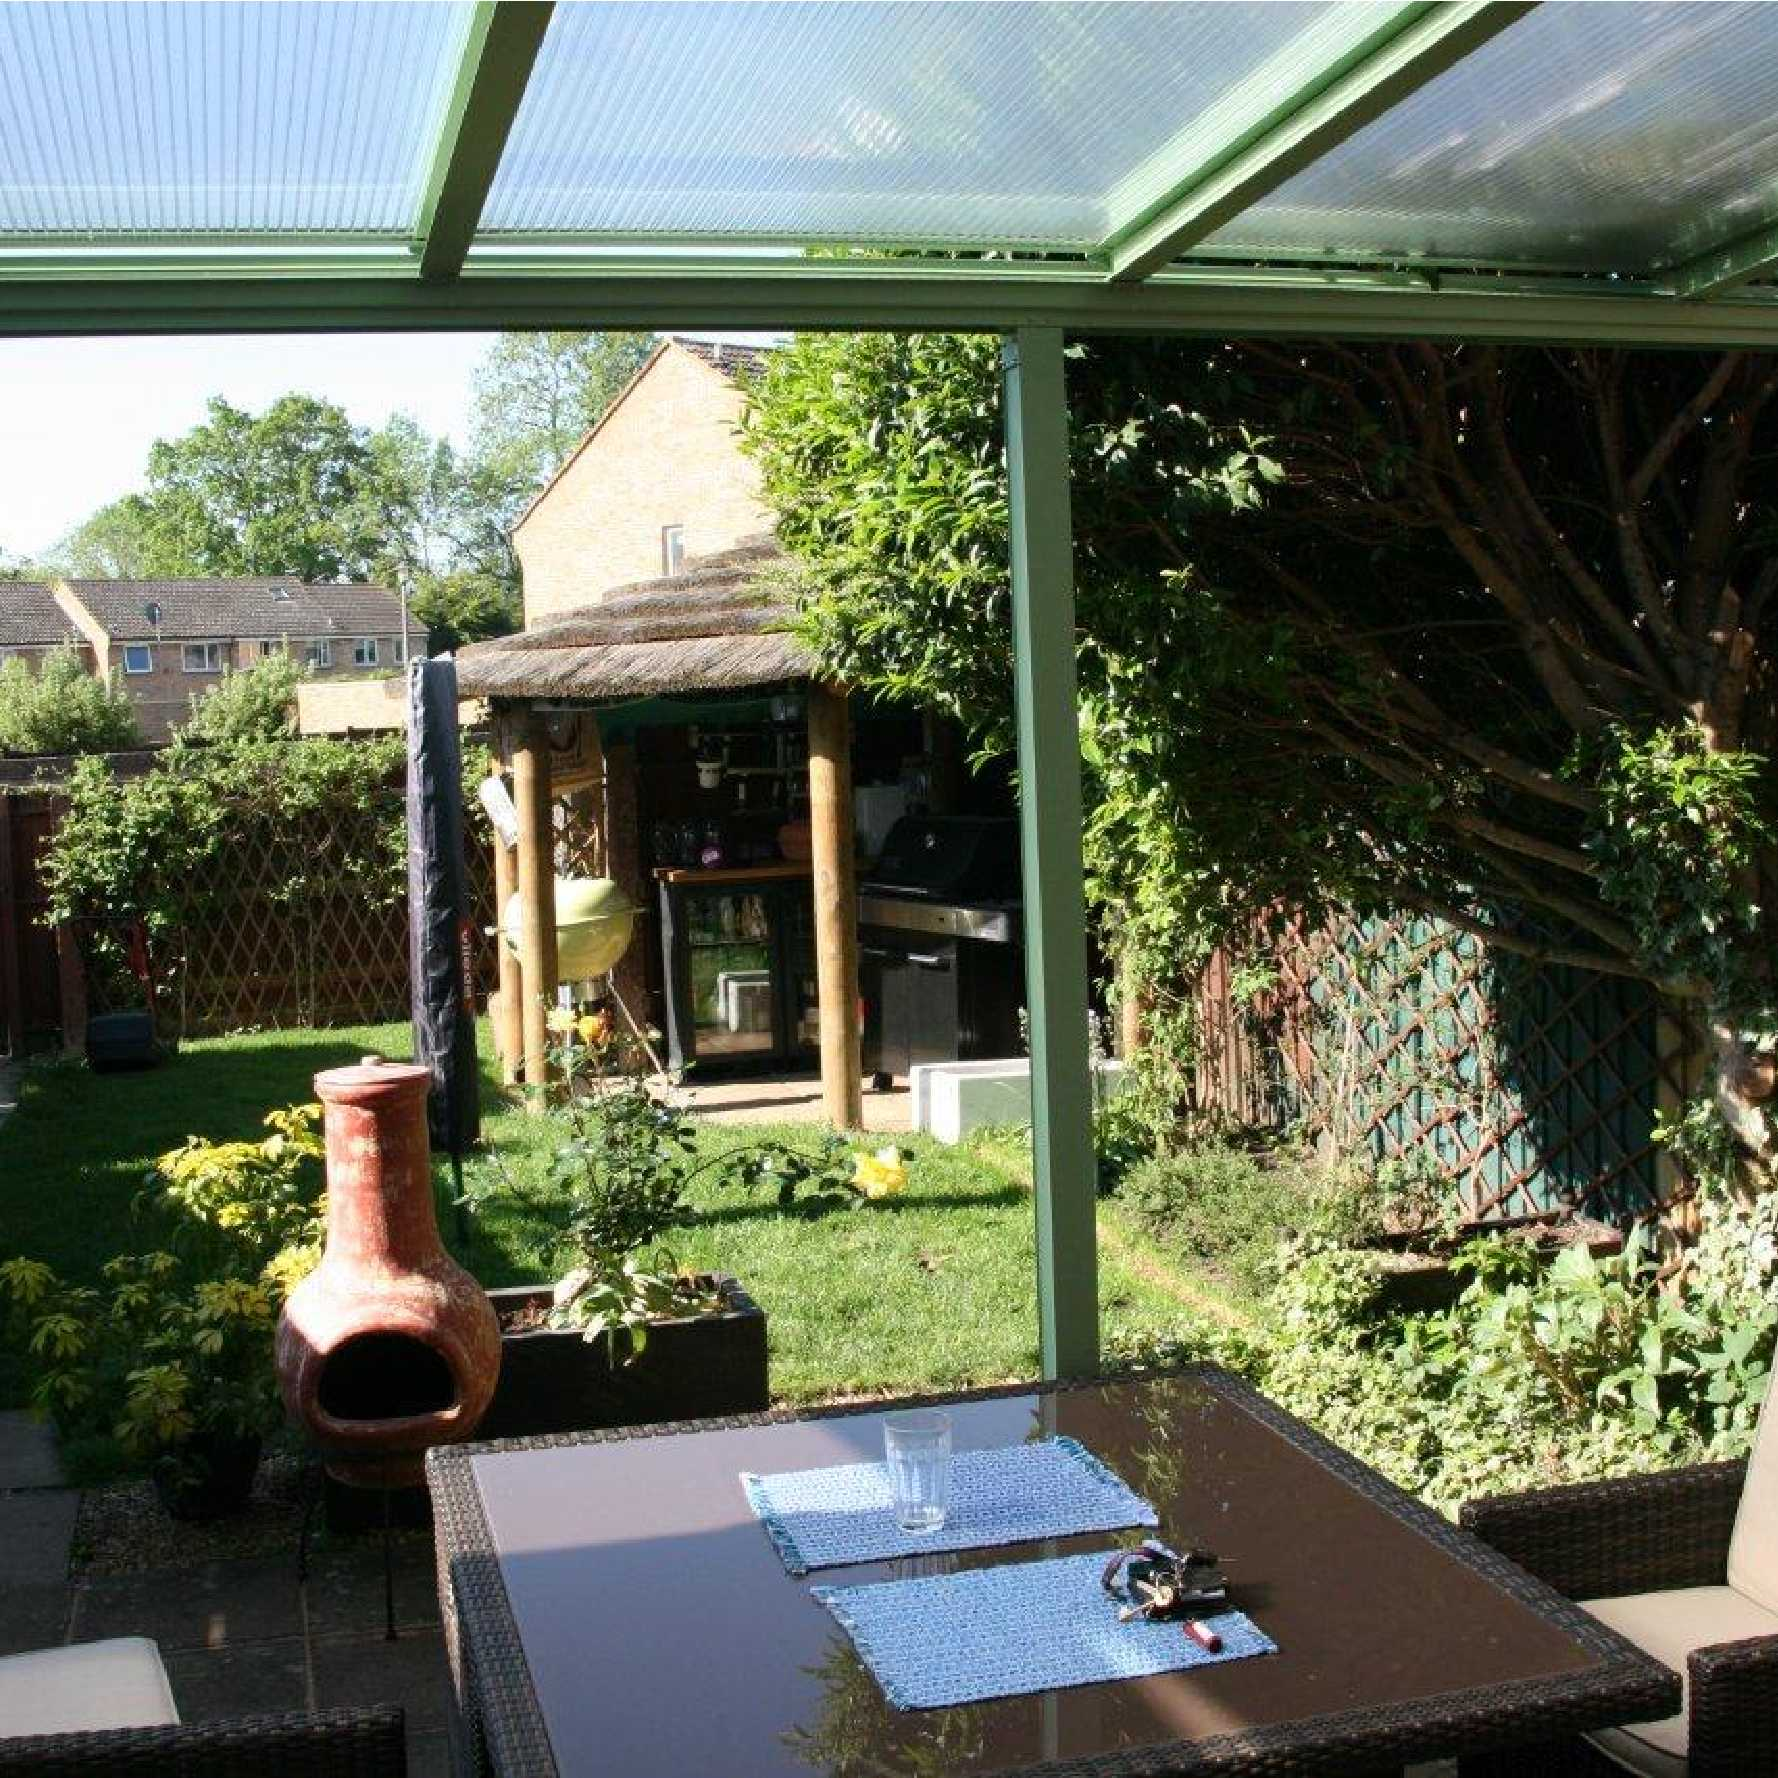 Affordable Omega Smart White Lean-To Canopy with 16mm Polycarbonate Glazing - 8.4m (W) x 3.5m (P), (4) Supporting Posts